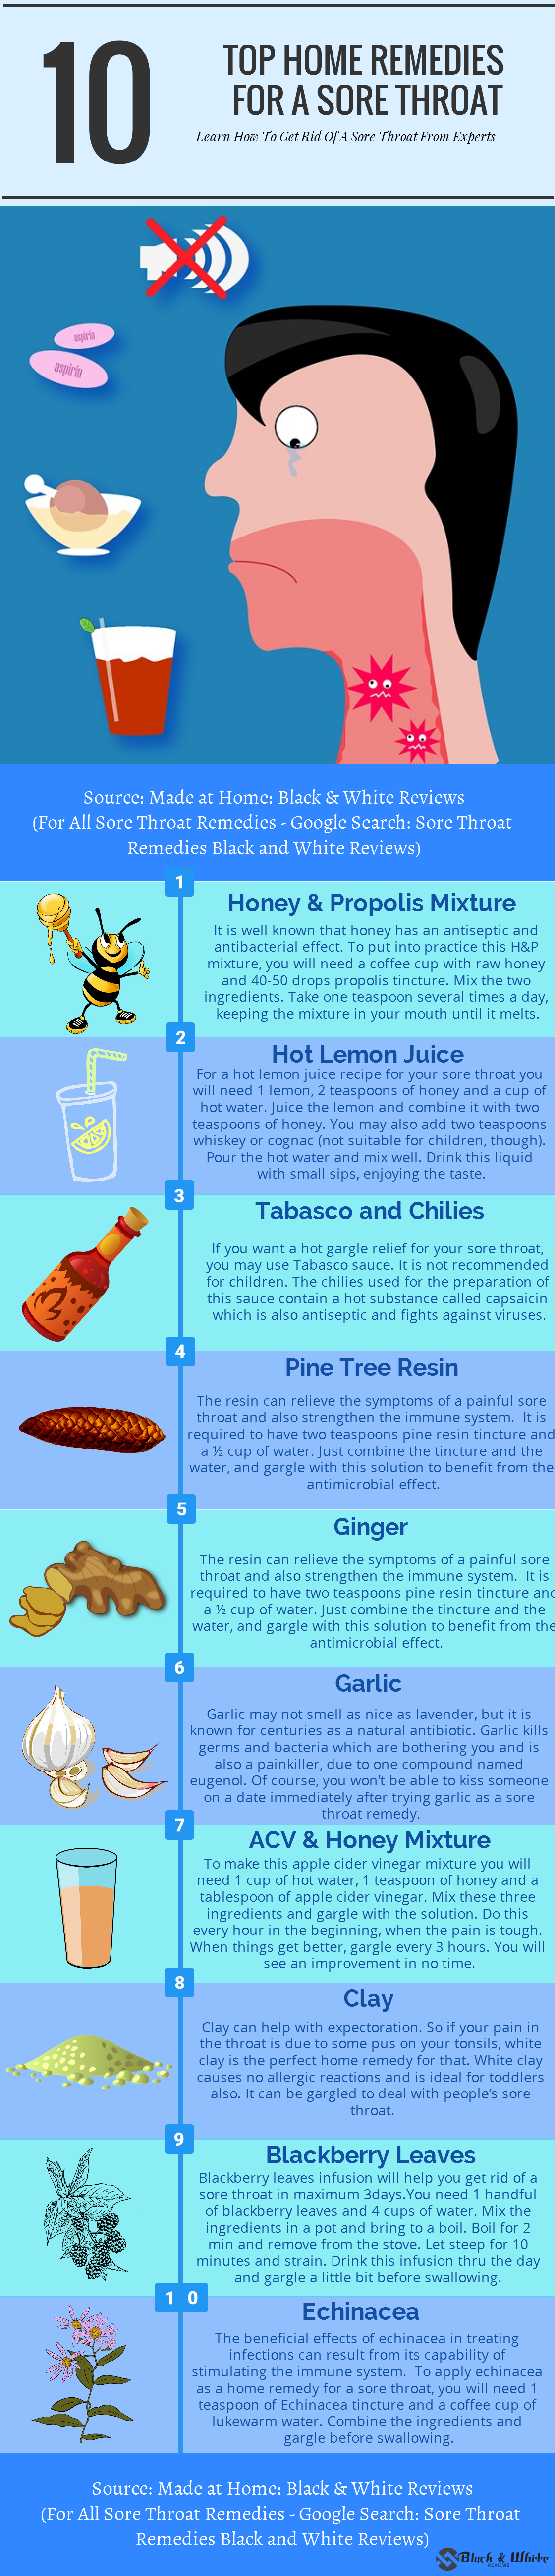 Home remedies for a sore throat (TOP 10) Infographic